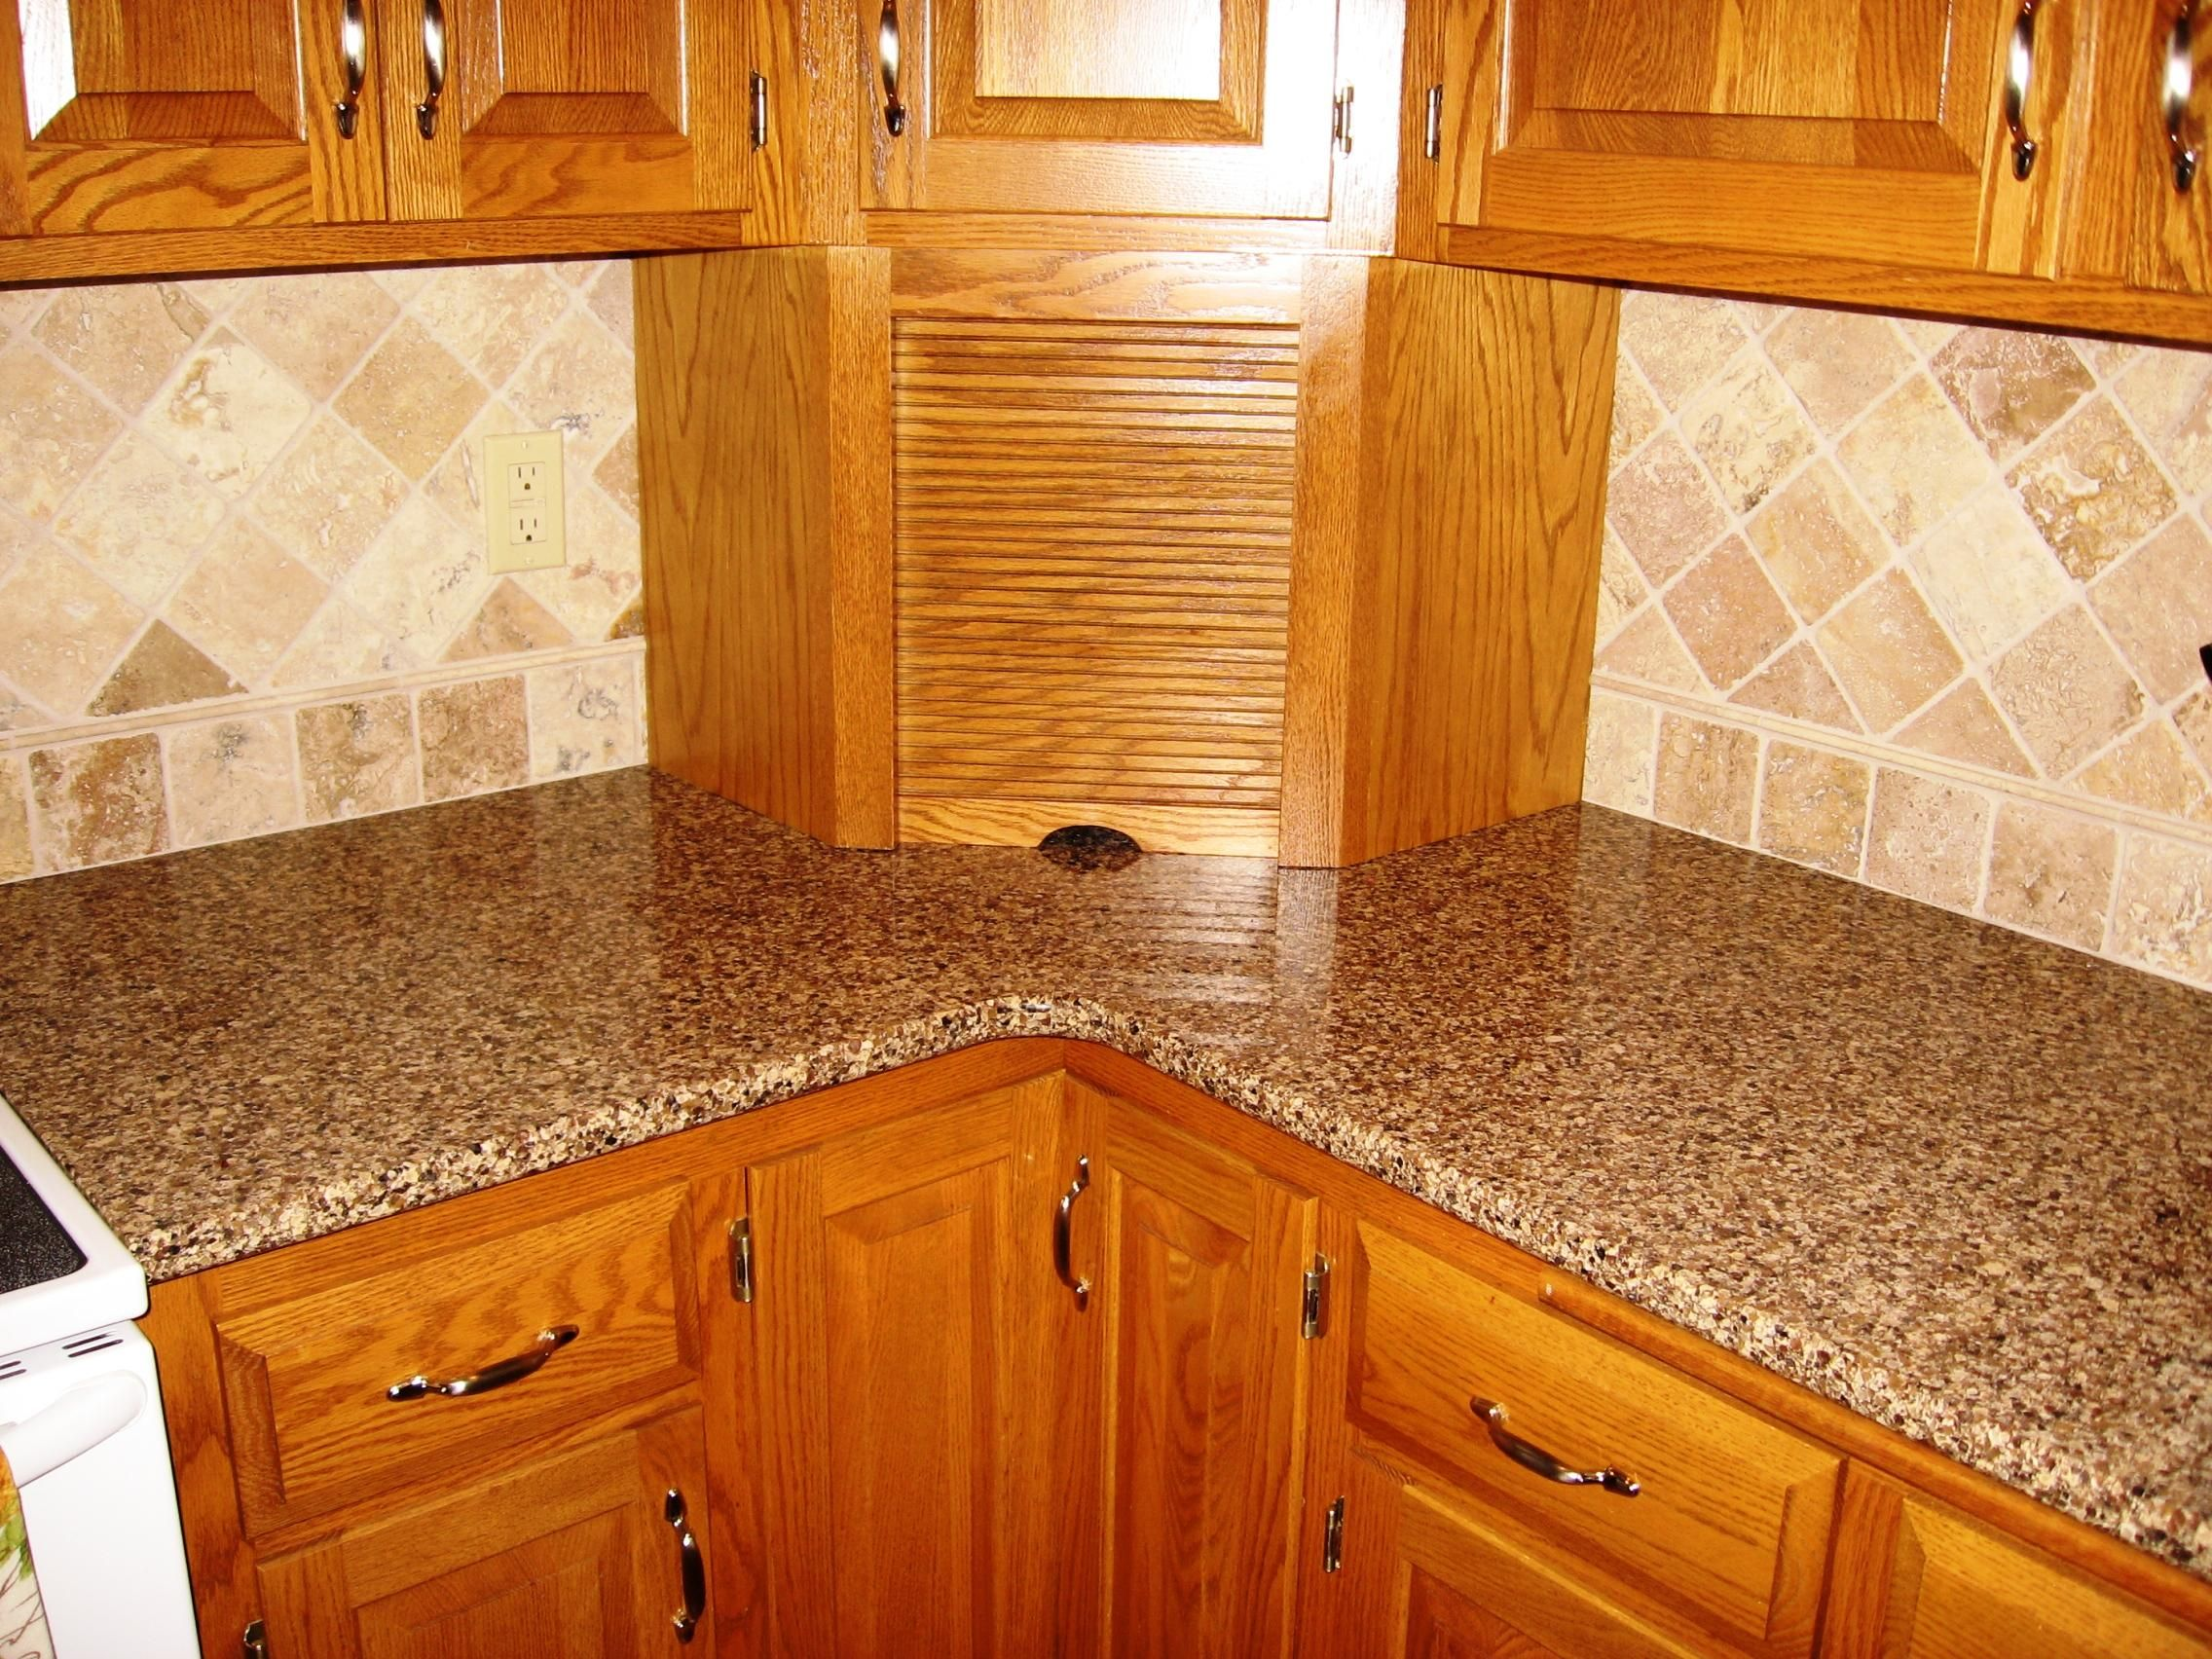 hardwood kitchen granite countertop caledonia granite counters in the kitchen Raw Silk Granite Kitchen Countertop